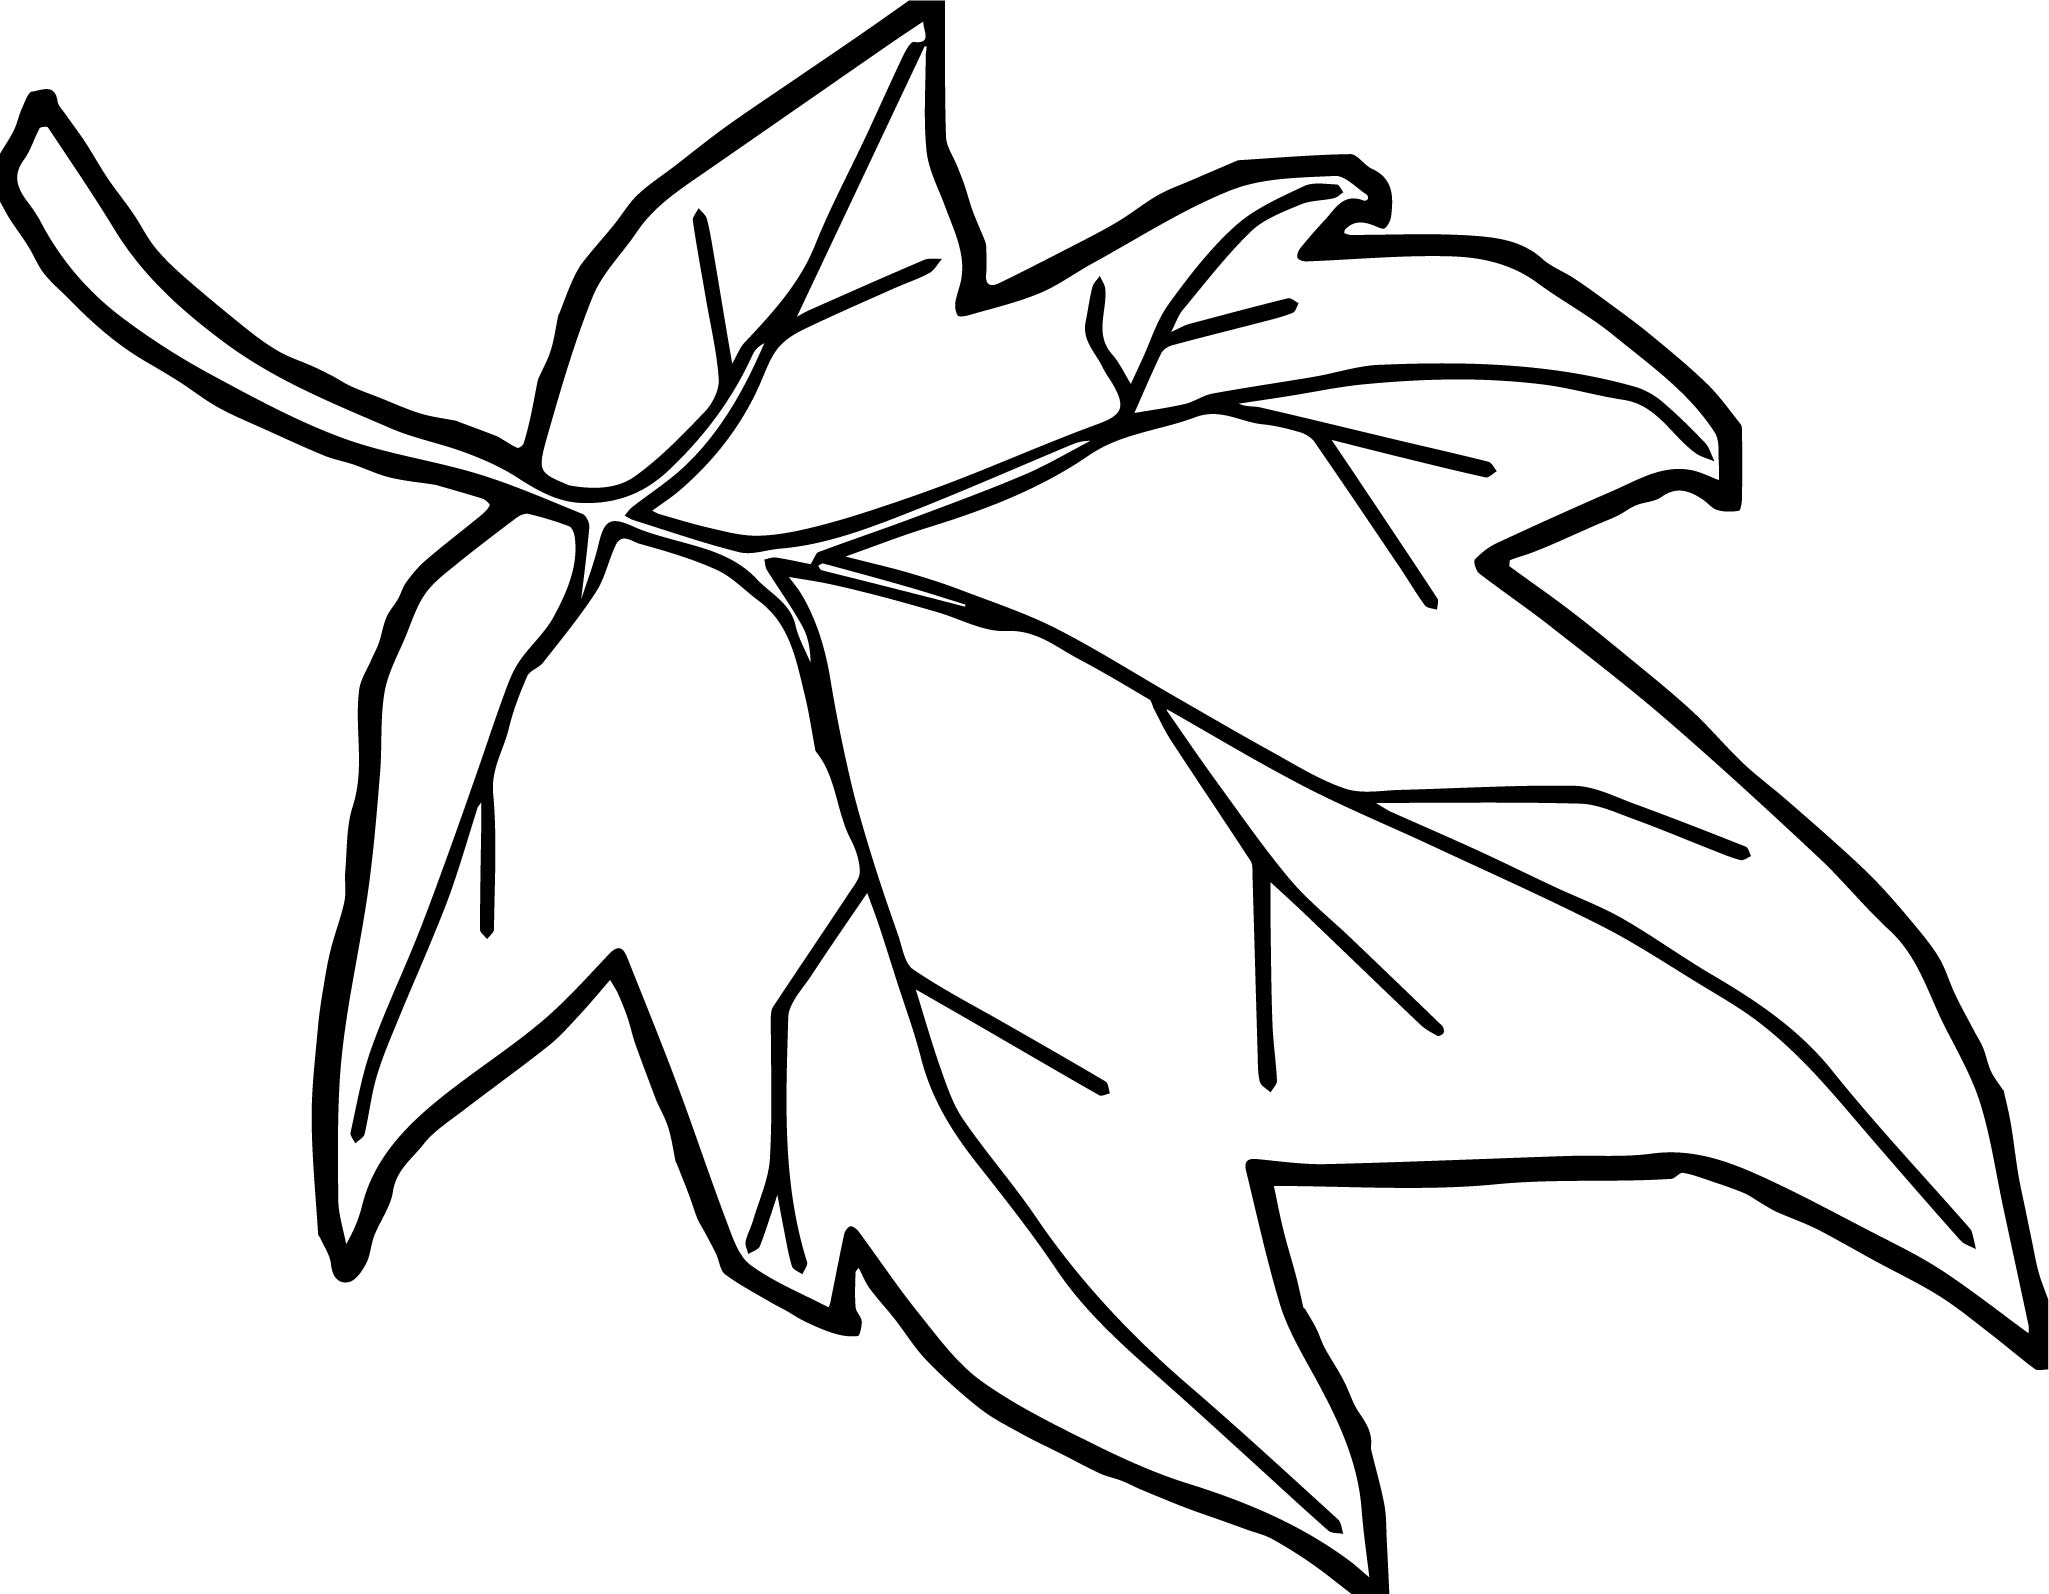 Orange Autumn Leaf Coloring Page Wecoloringpage